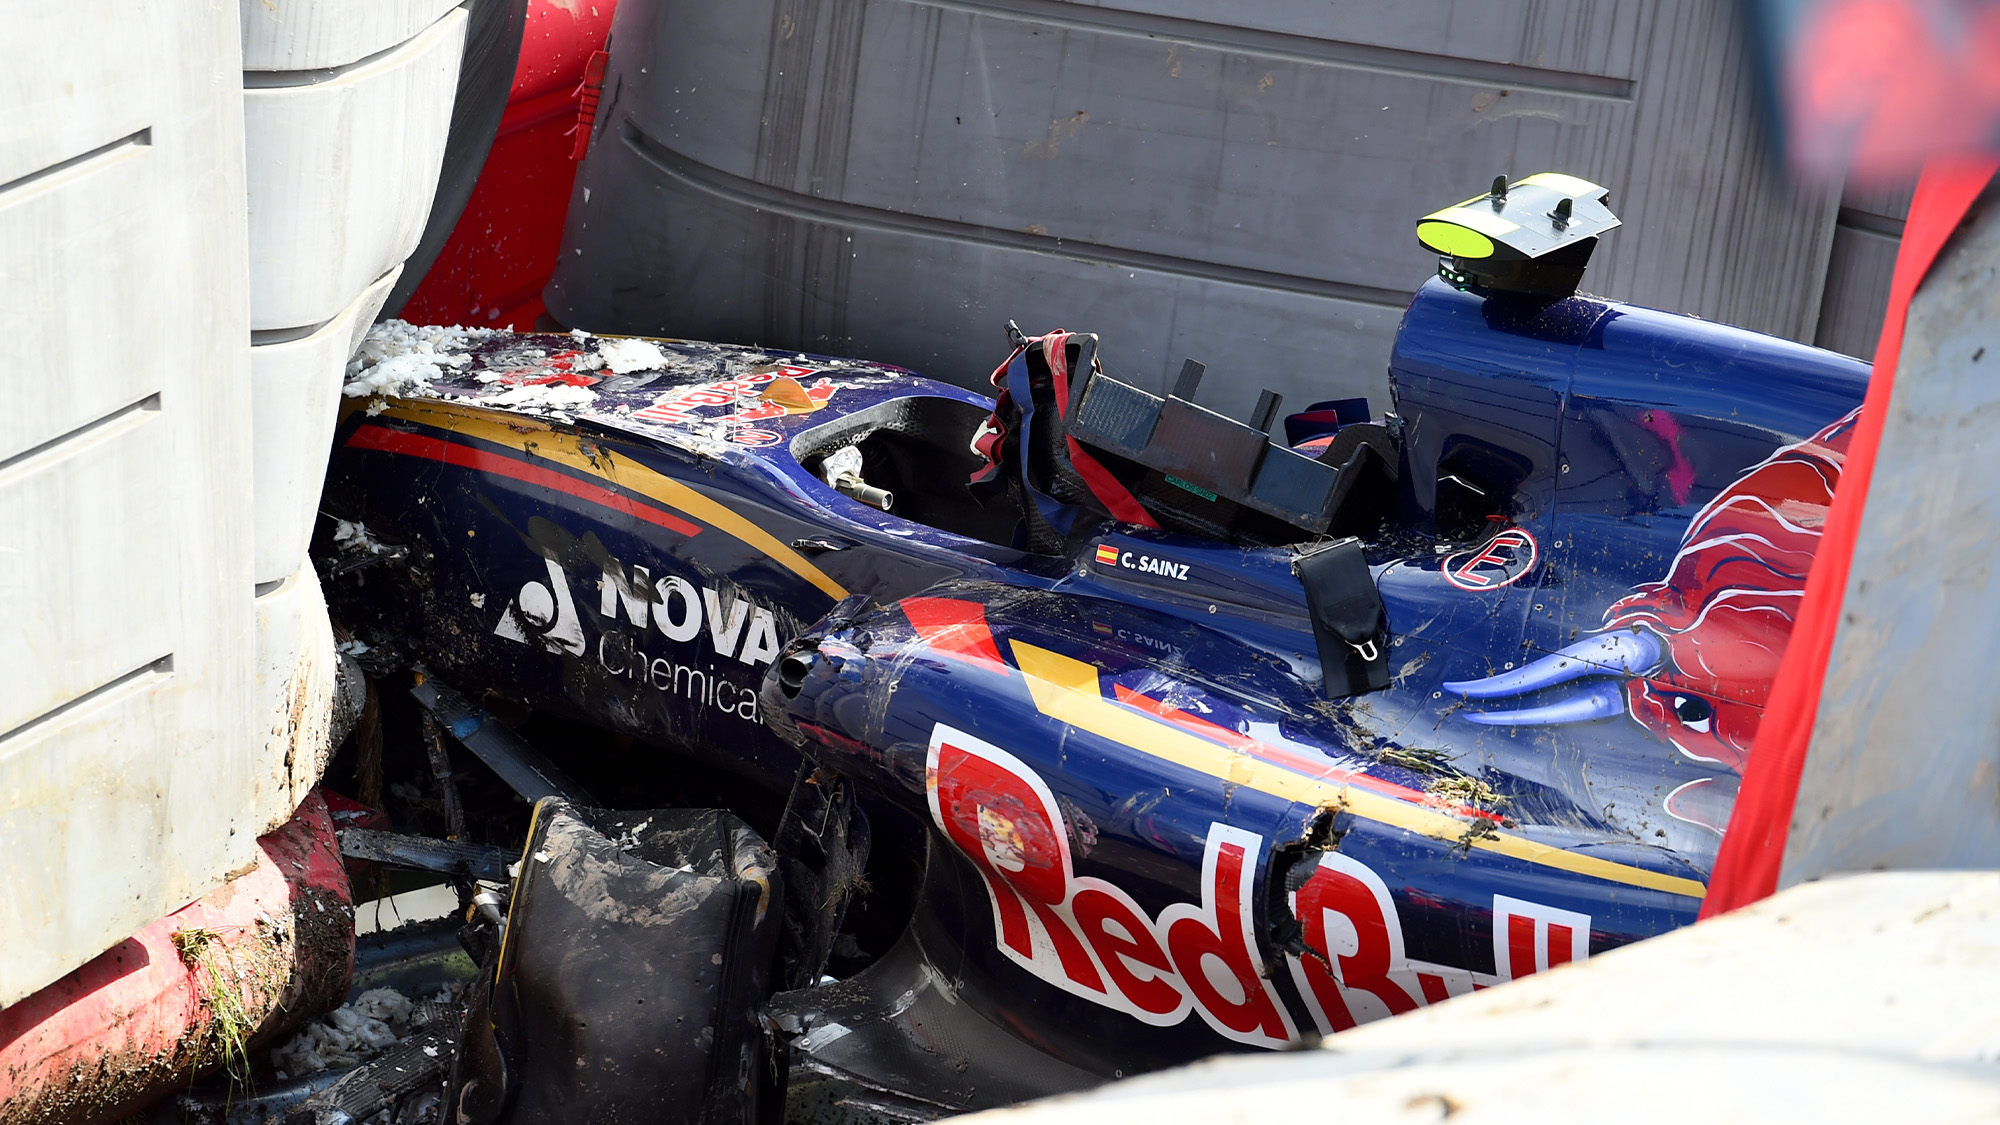 Wreckage of Carlos Sainz's car after crashing at the 2015 F1 Russian Grand Prix